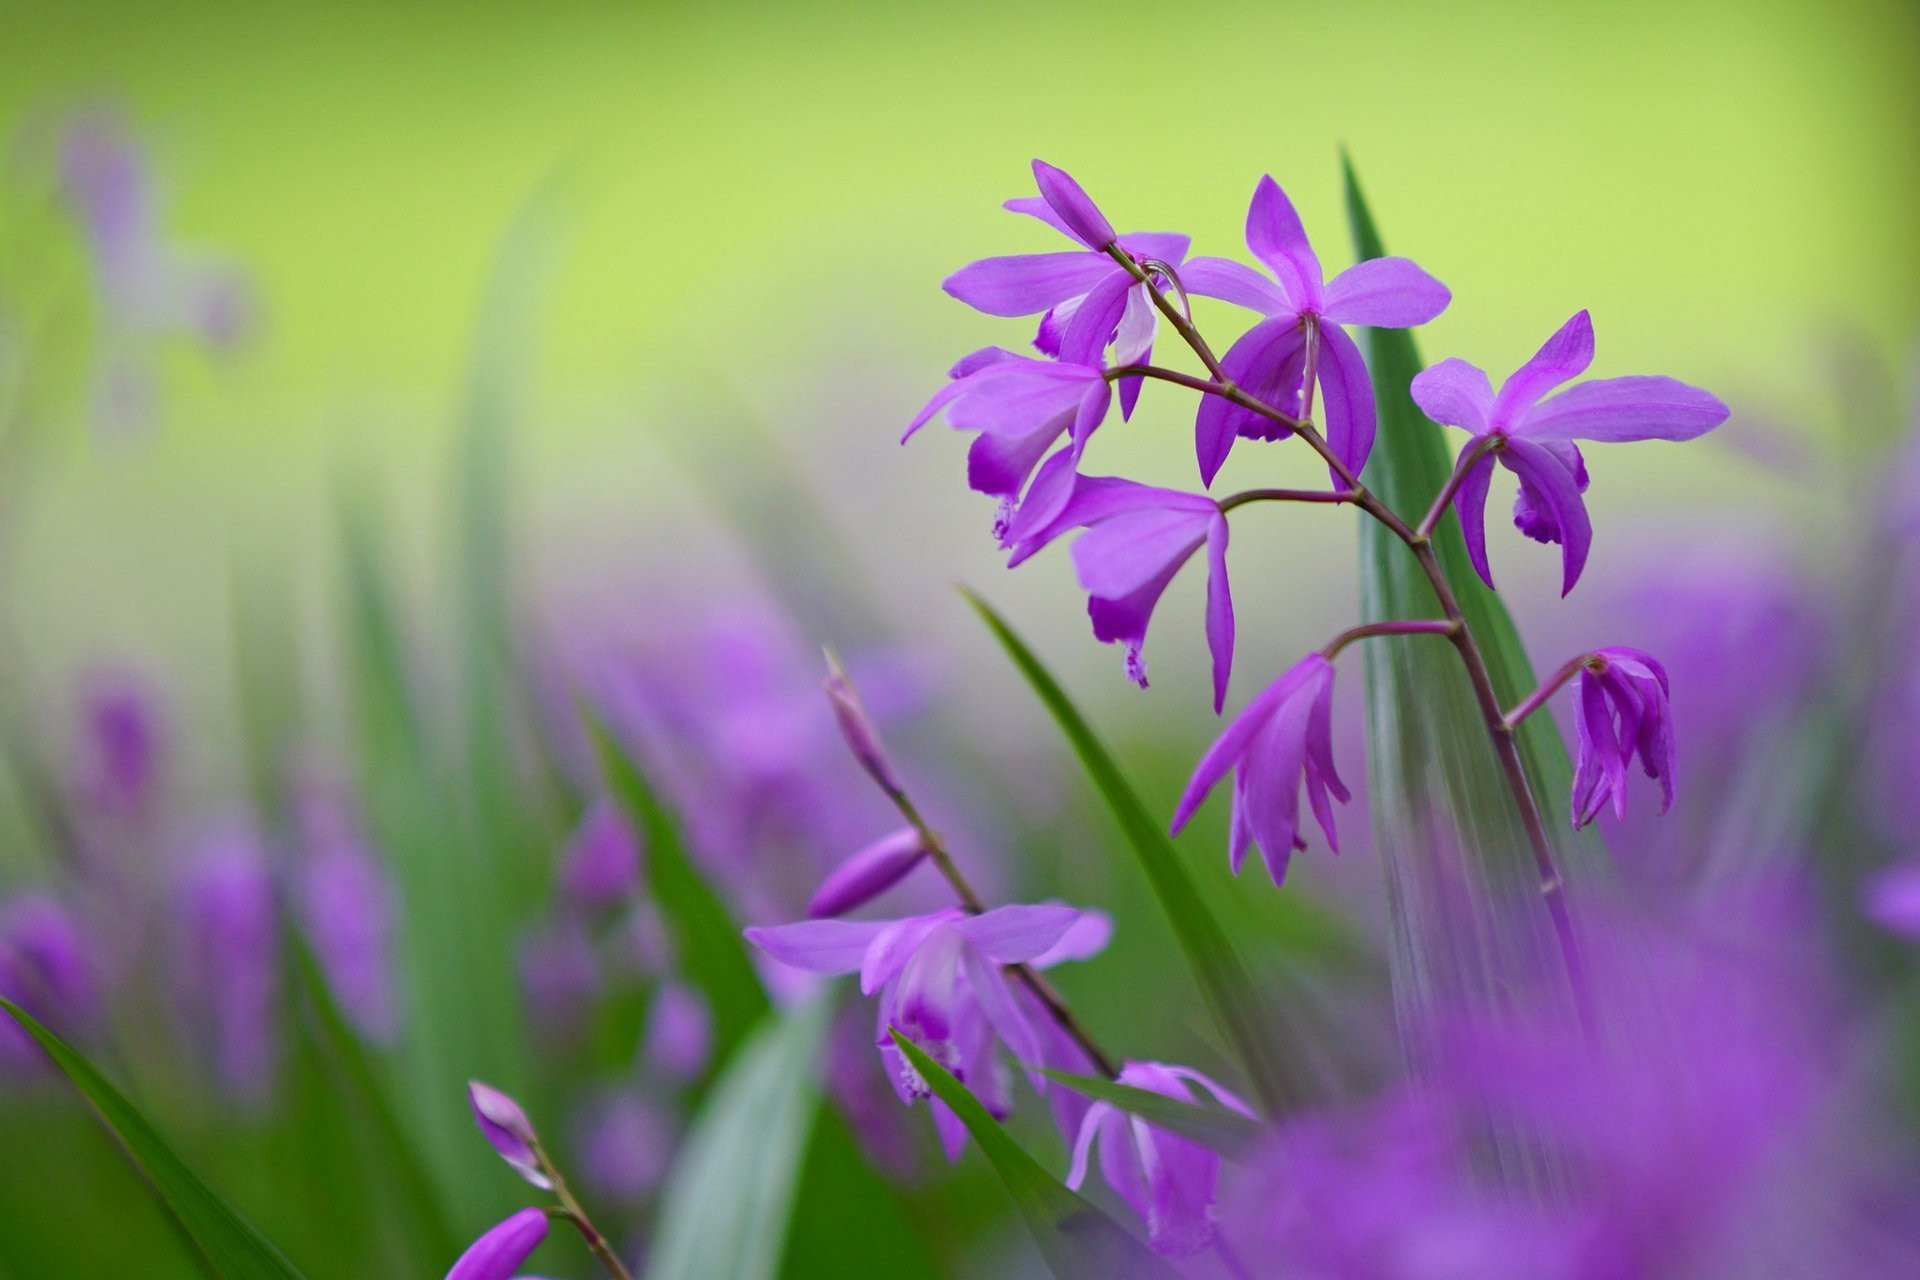 1920x1280 bletilla flower purple petals light green background close up blur